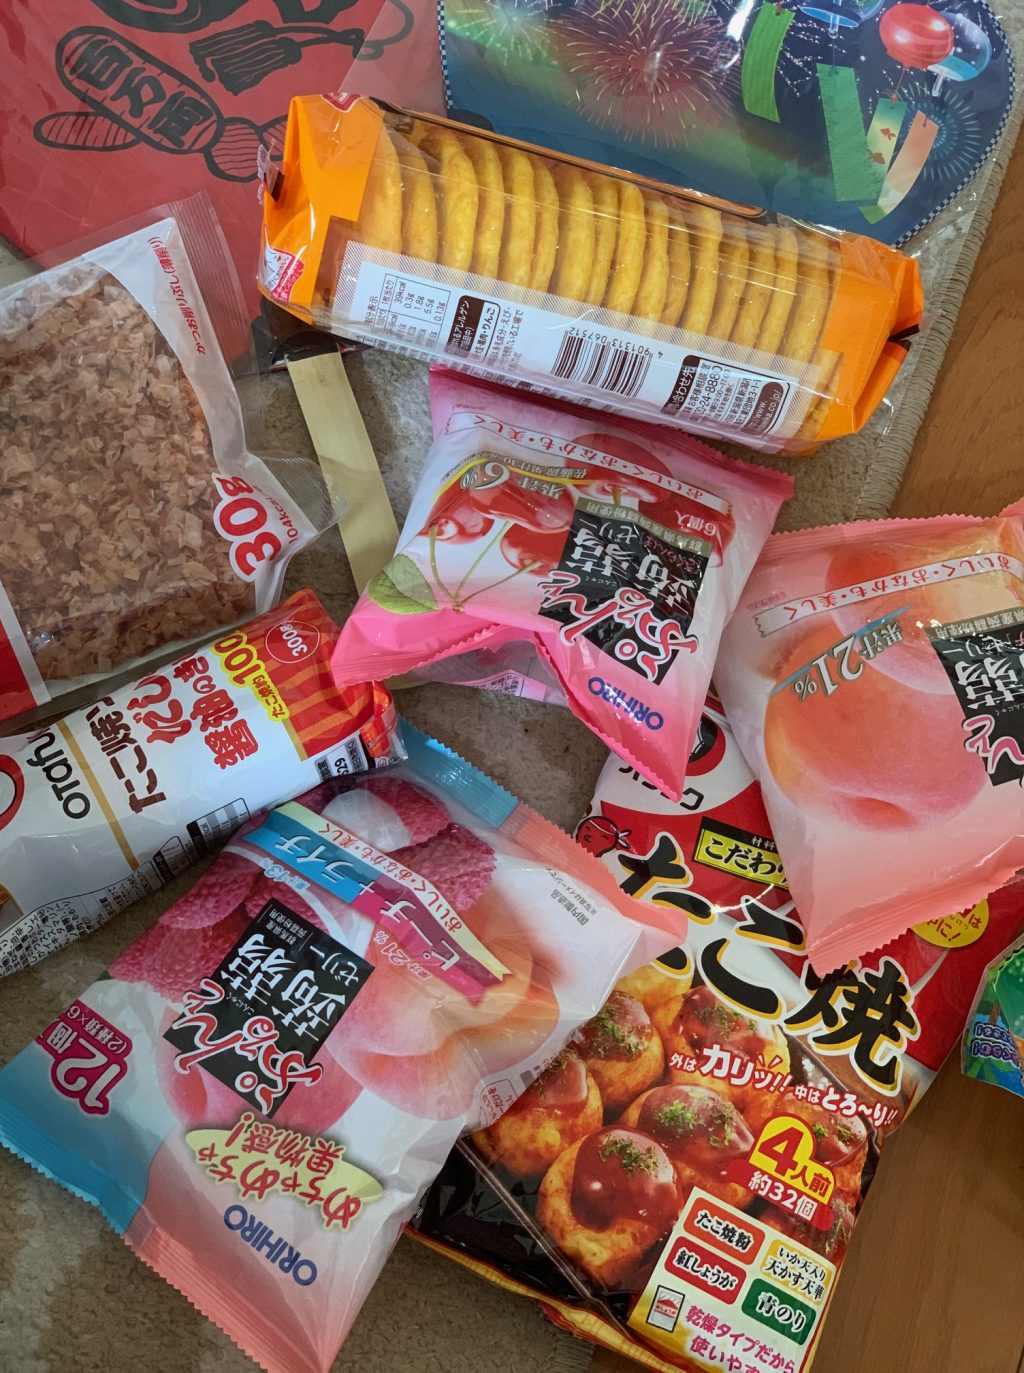 ingredients for our Natsu matsuri festival dishes